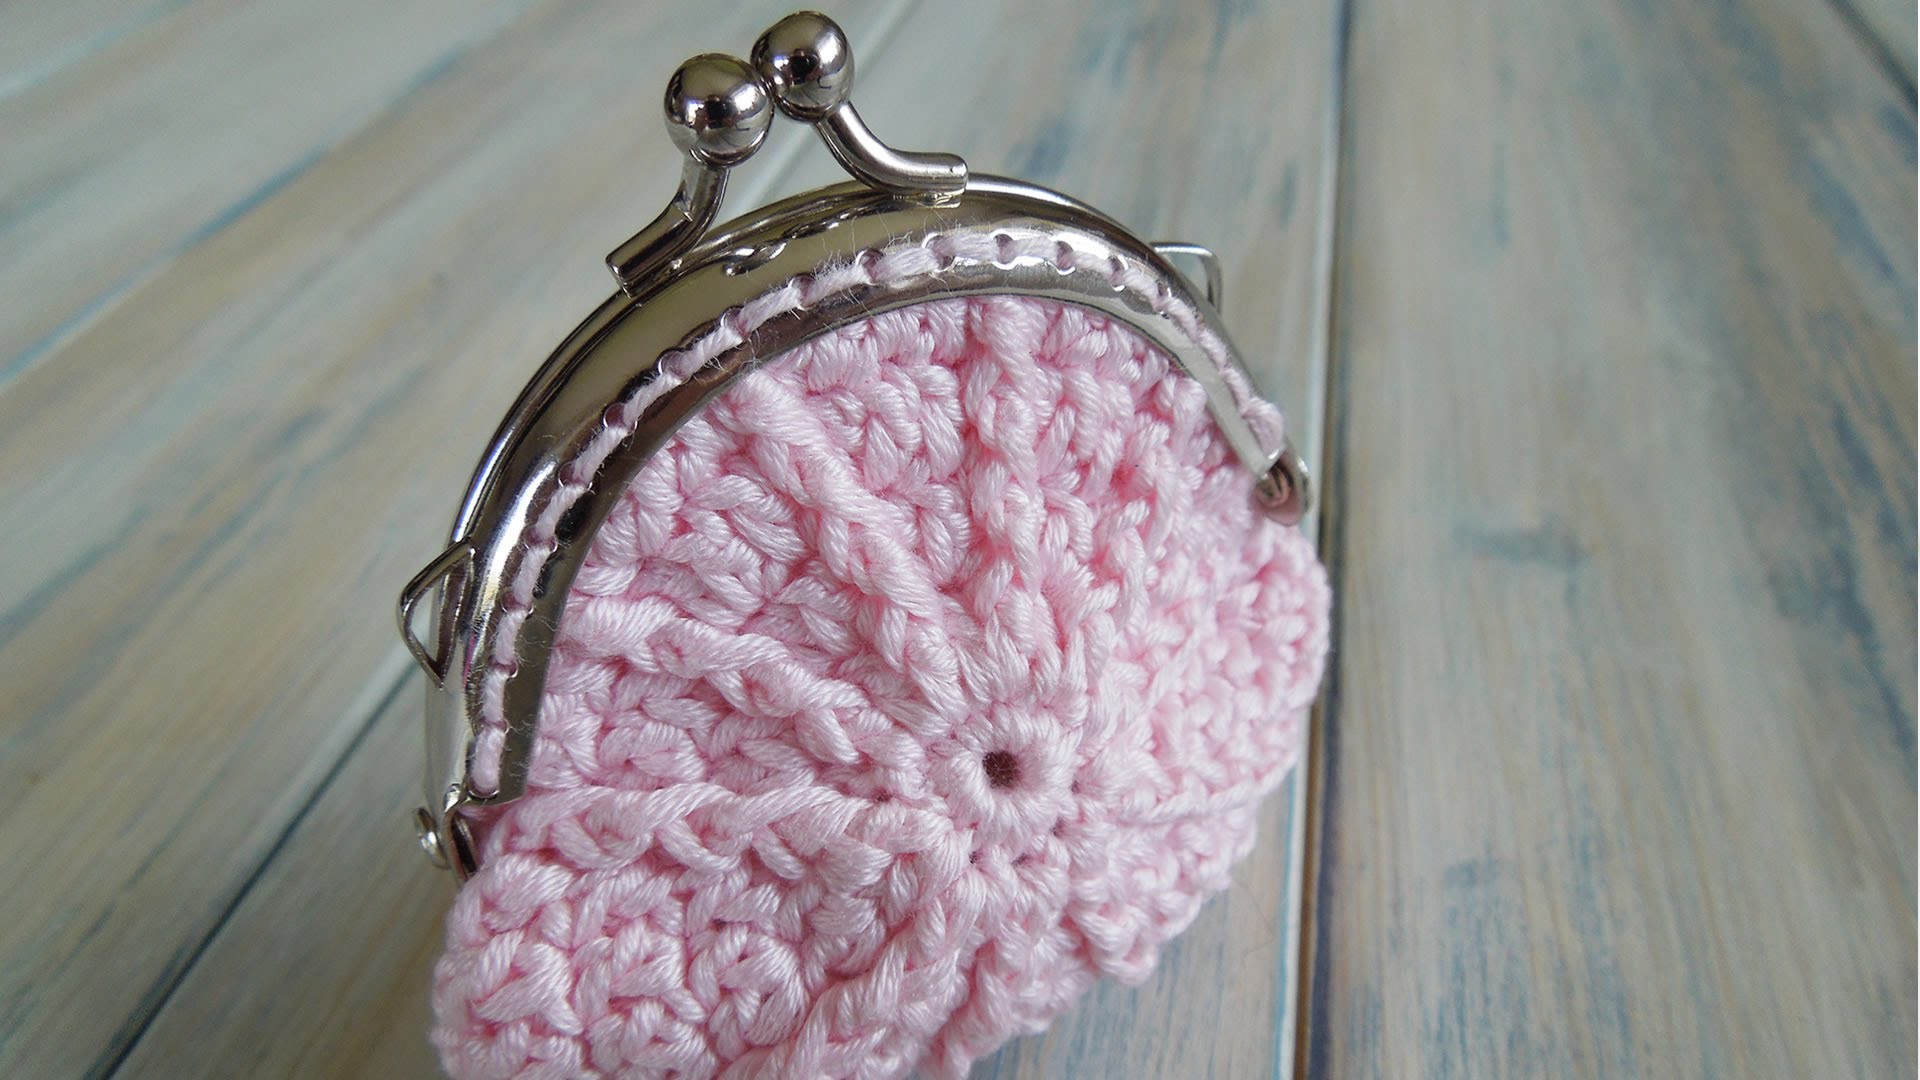 (Crochet) How To - Crochet a Coin Purse and Sew in Purse Frame Handles